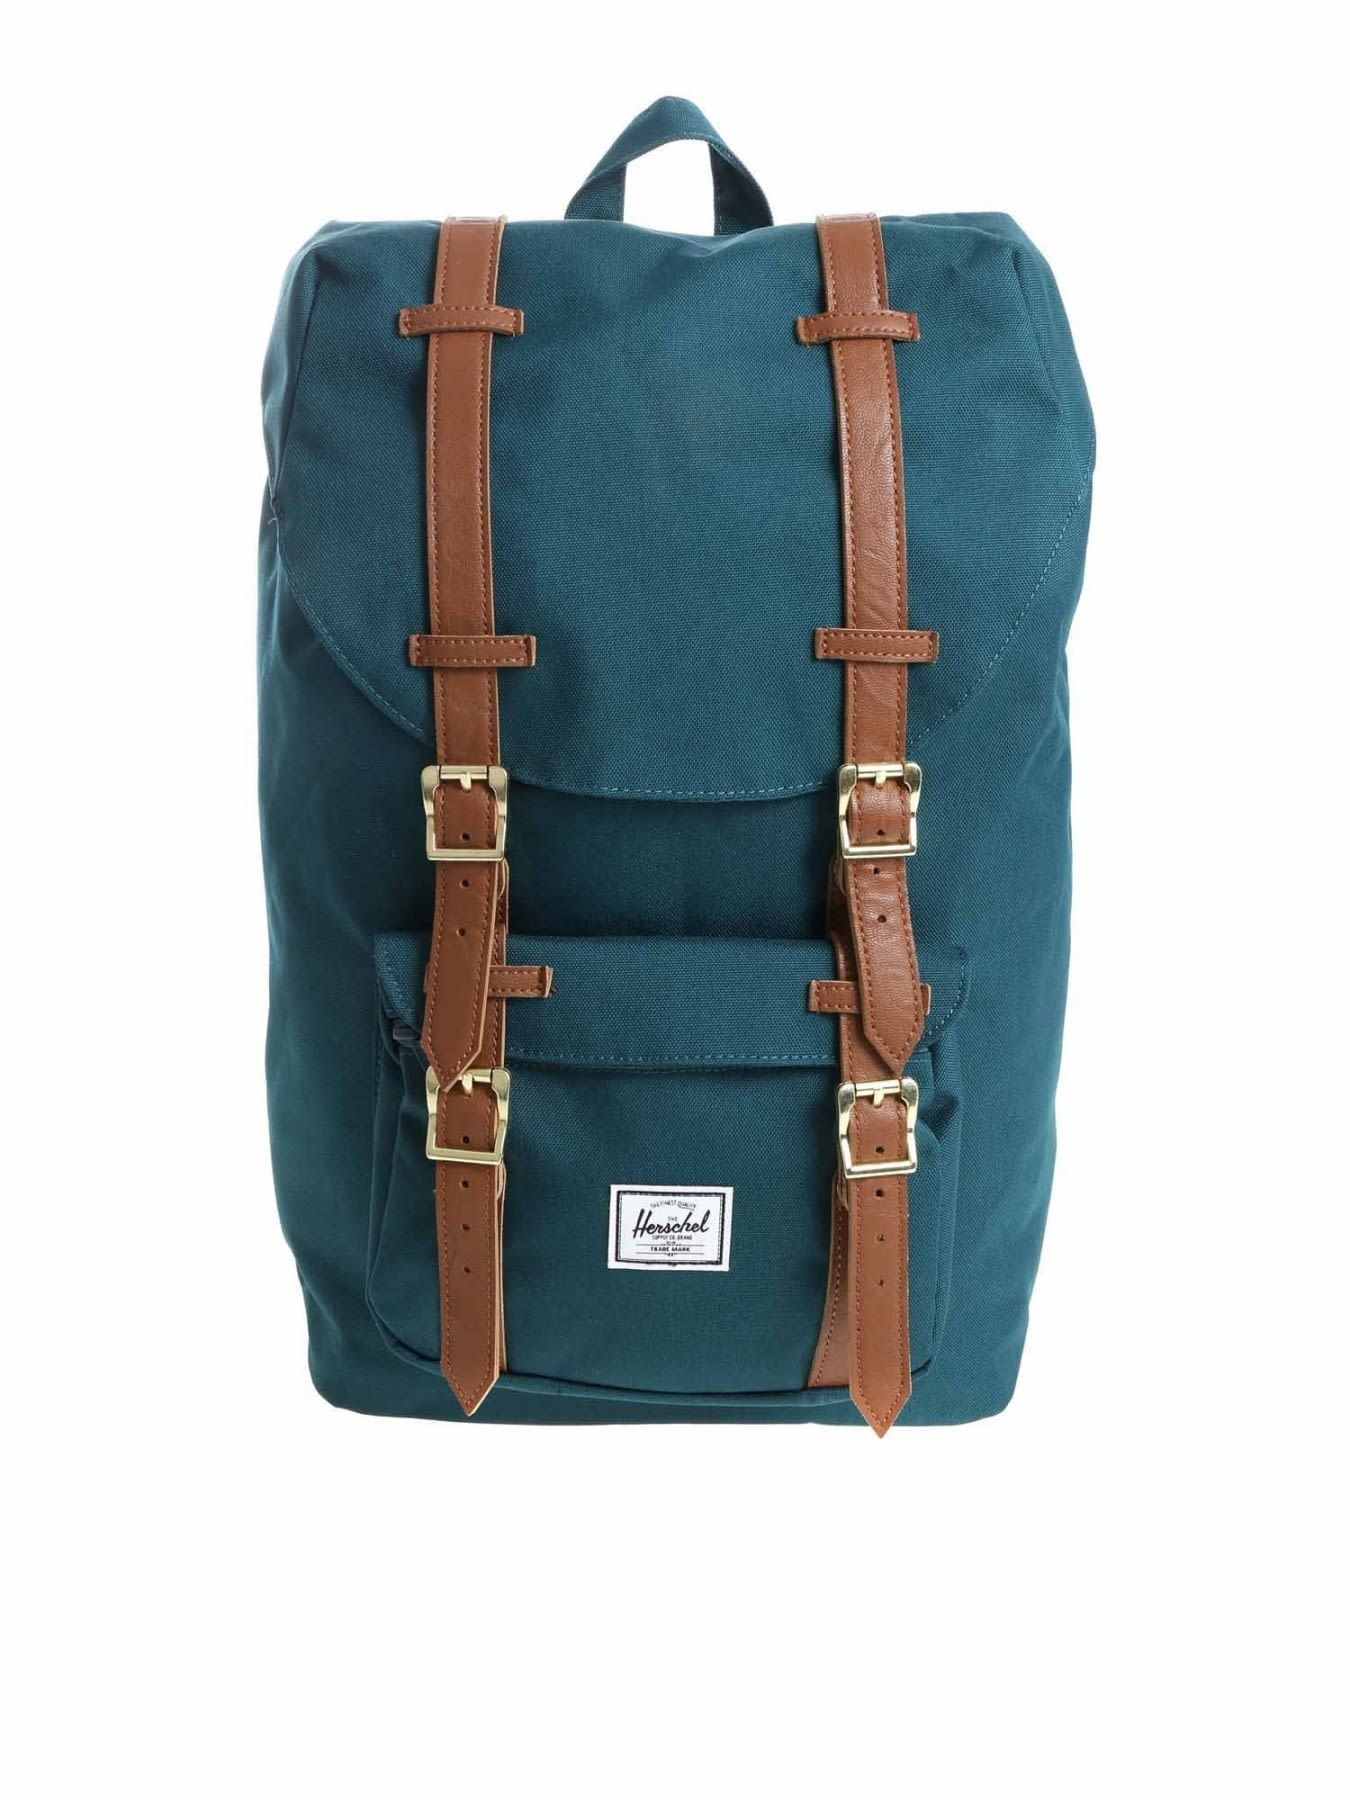 85e63d87bb HERSCHEL SUPPLY CO. BACKPACK LITTLE AMERICA.  herschelsupplyco.  bags   leather  lining  polyester  backpacks